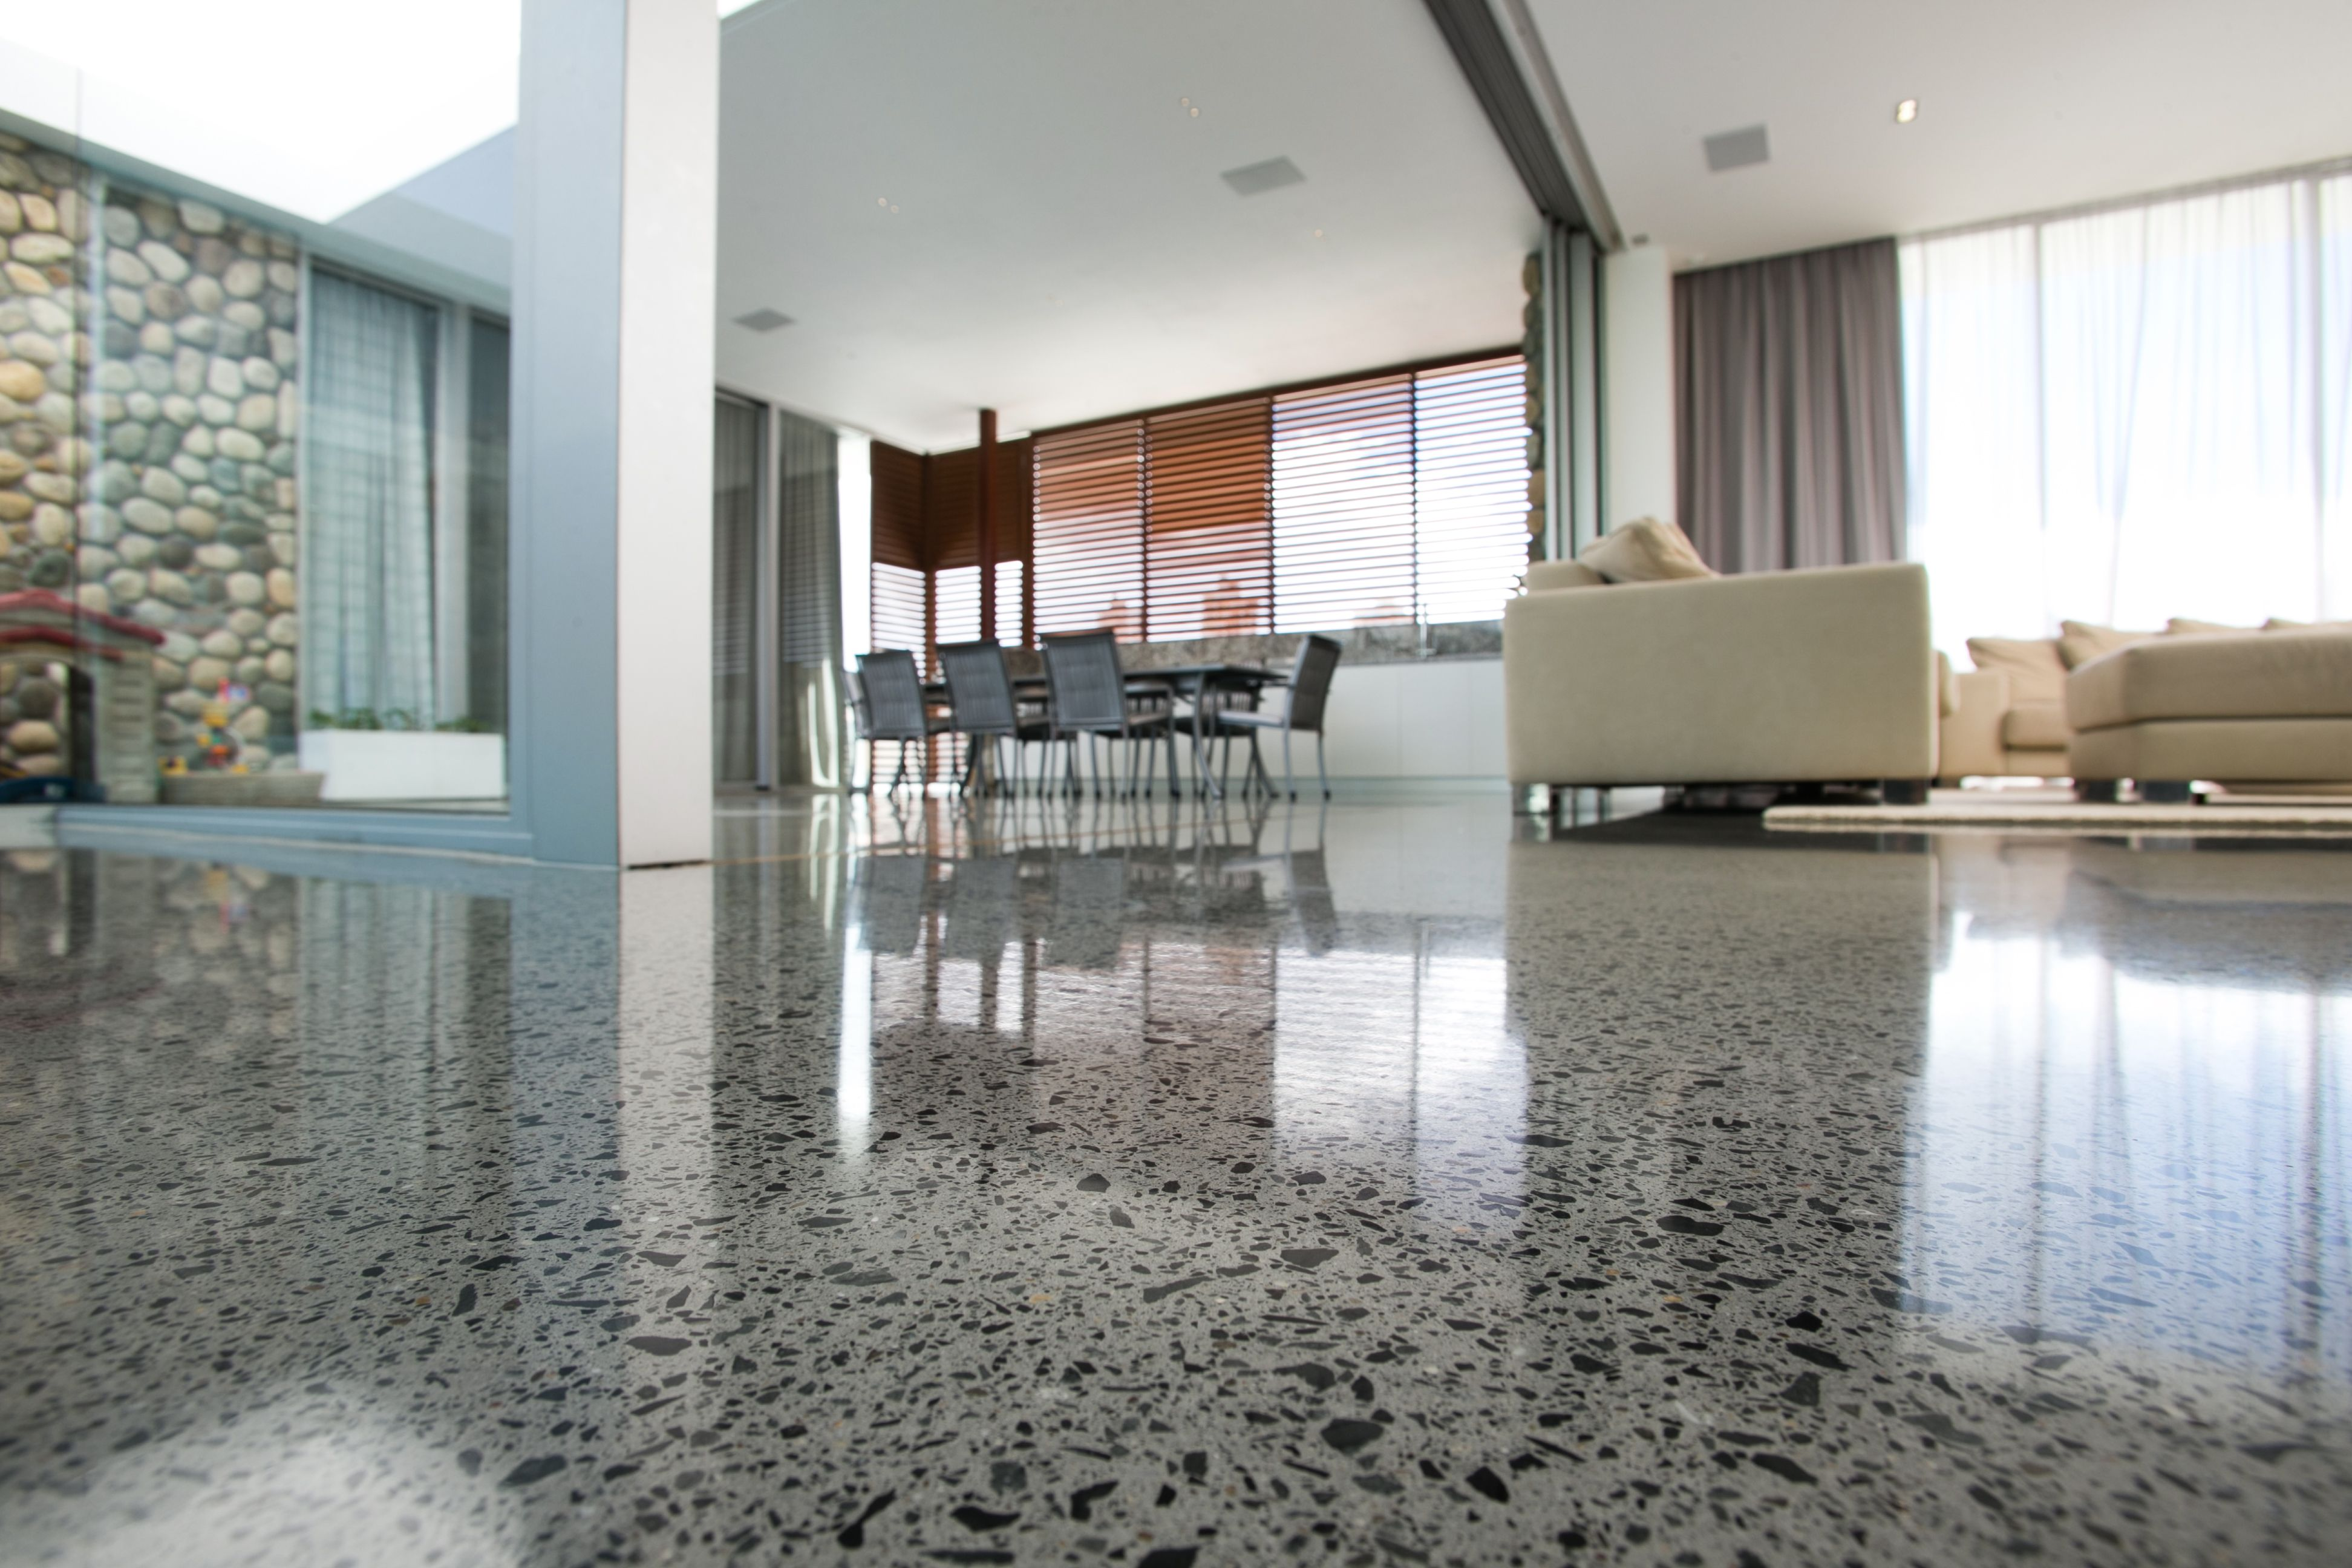 Exotic Polished Concrete Floors For Your Interior Decor Ideas Extraordinary Design With Sofa And White Wall Contemporary